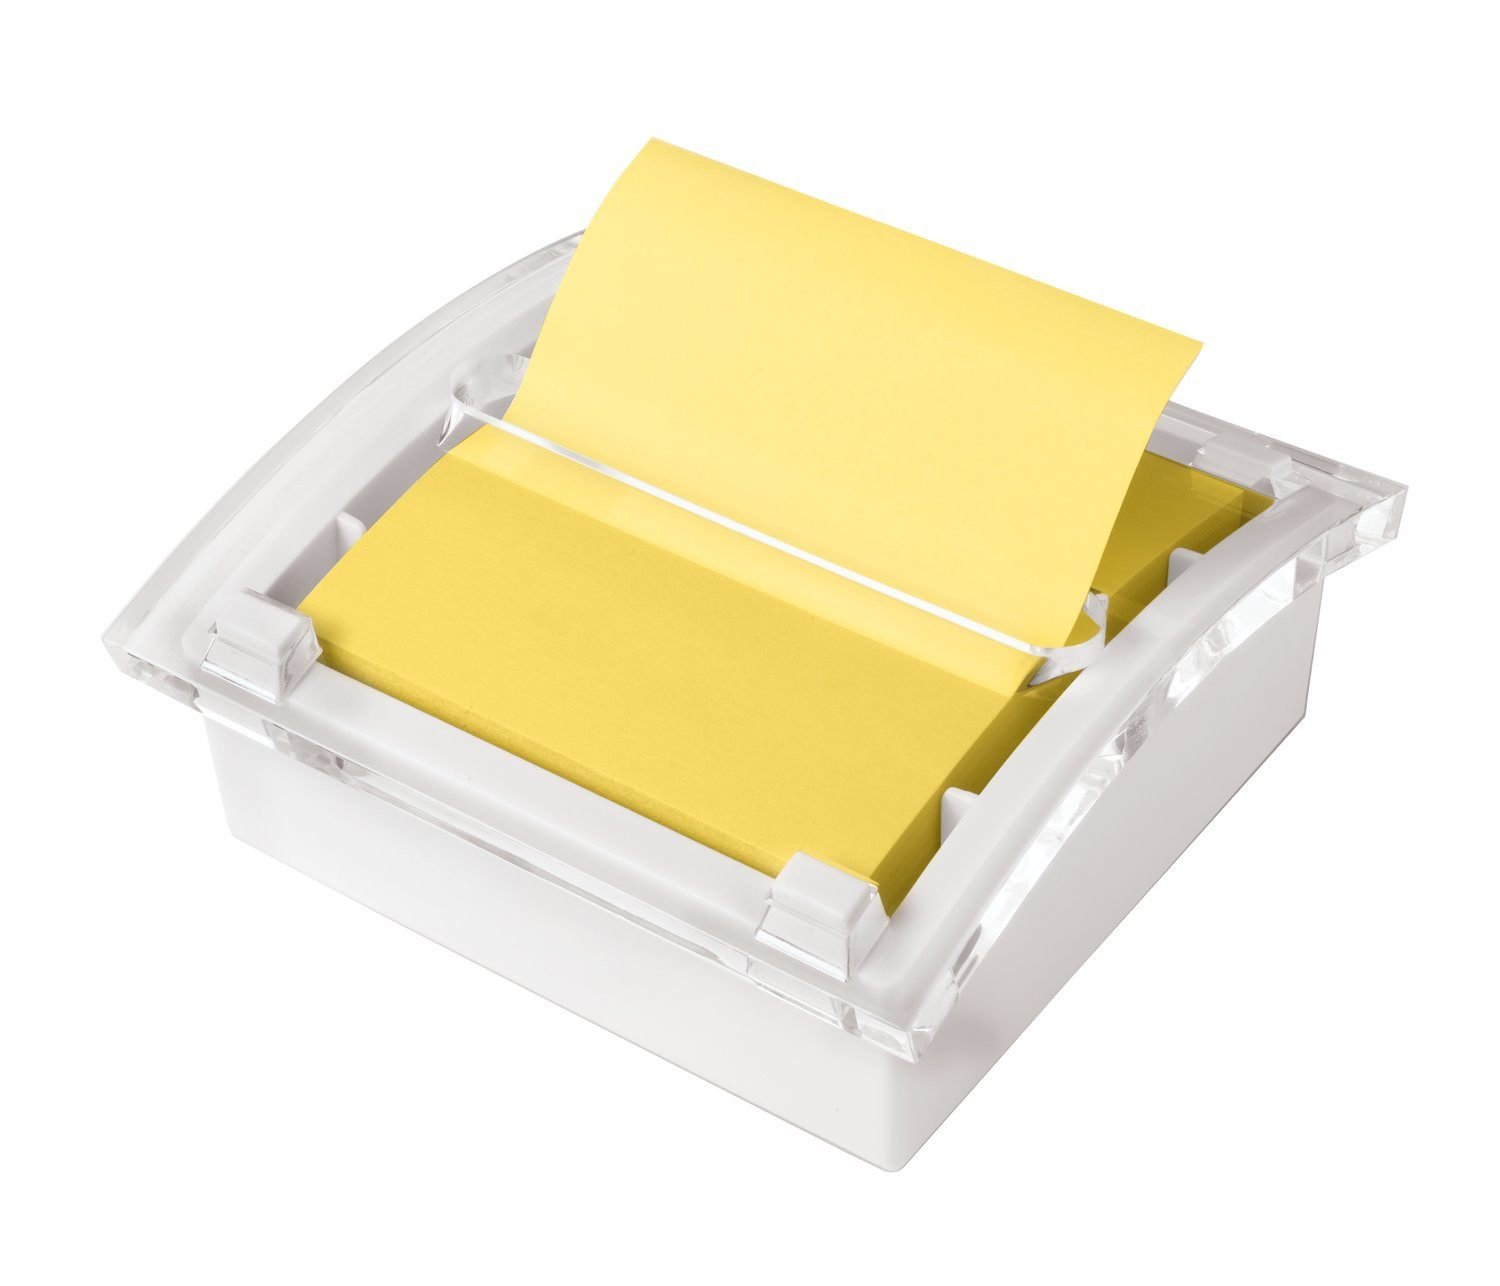 Post-it Pop-up Notes Dispenser, 3 in x 3 in, White Base Clear Top (DS330-WH) by Post-it